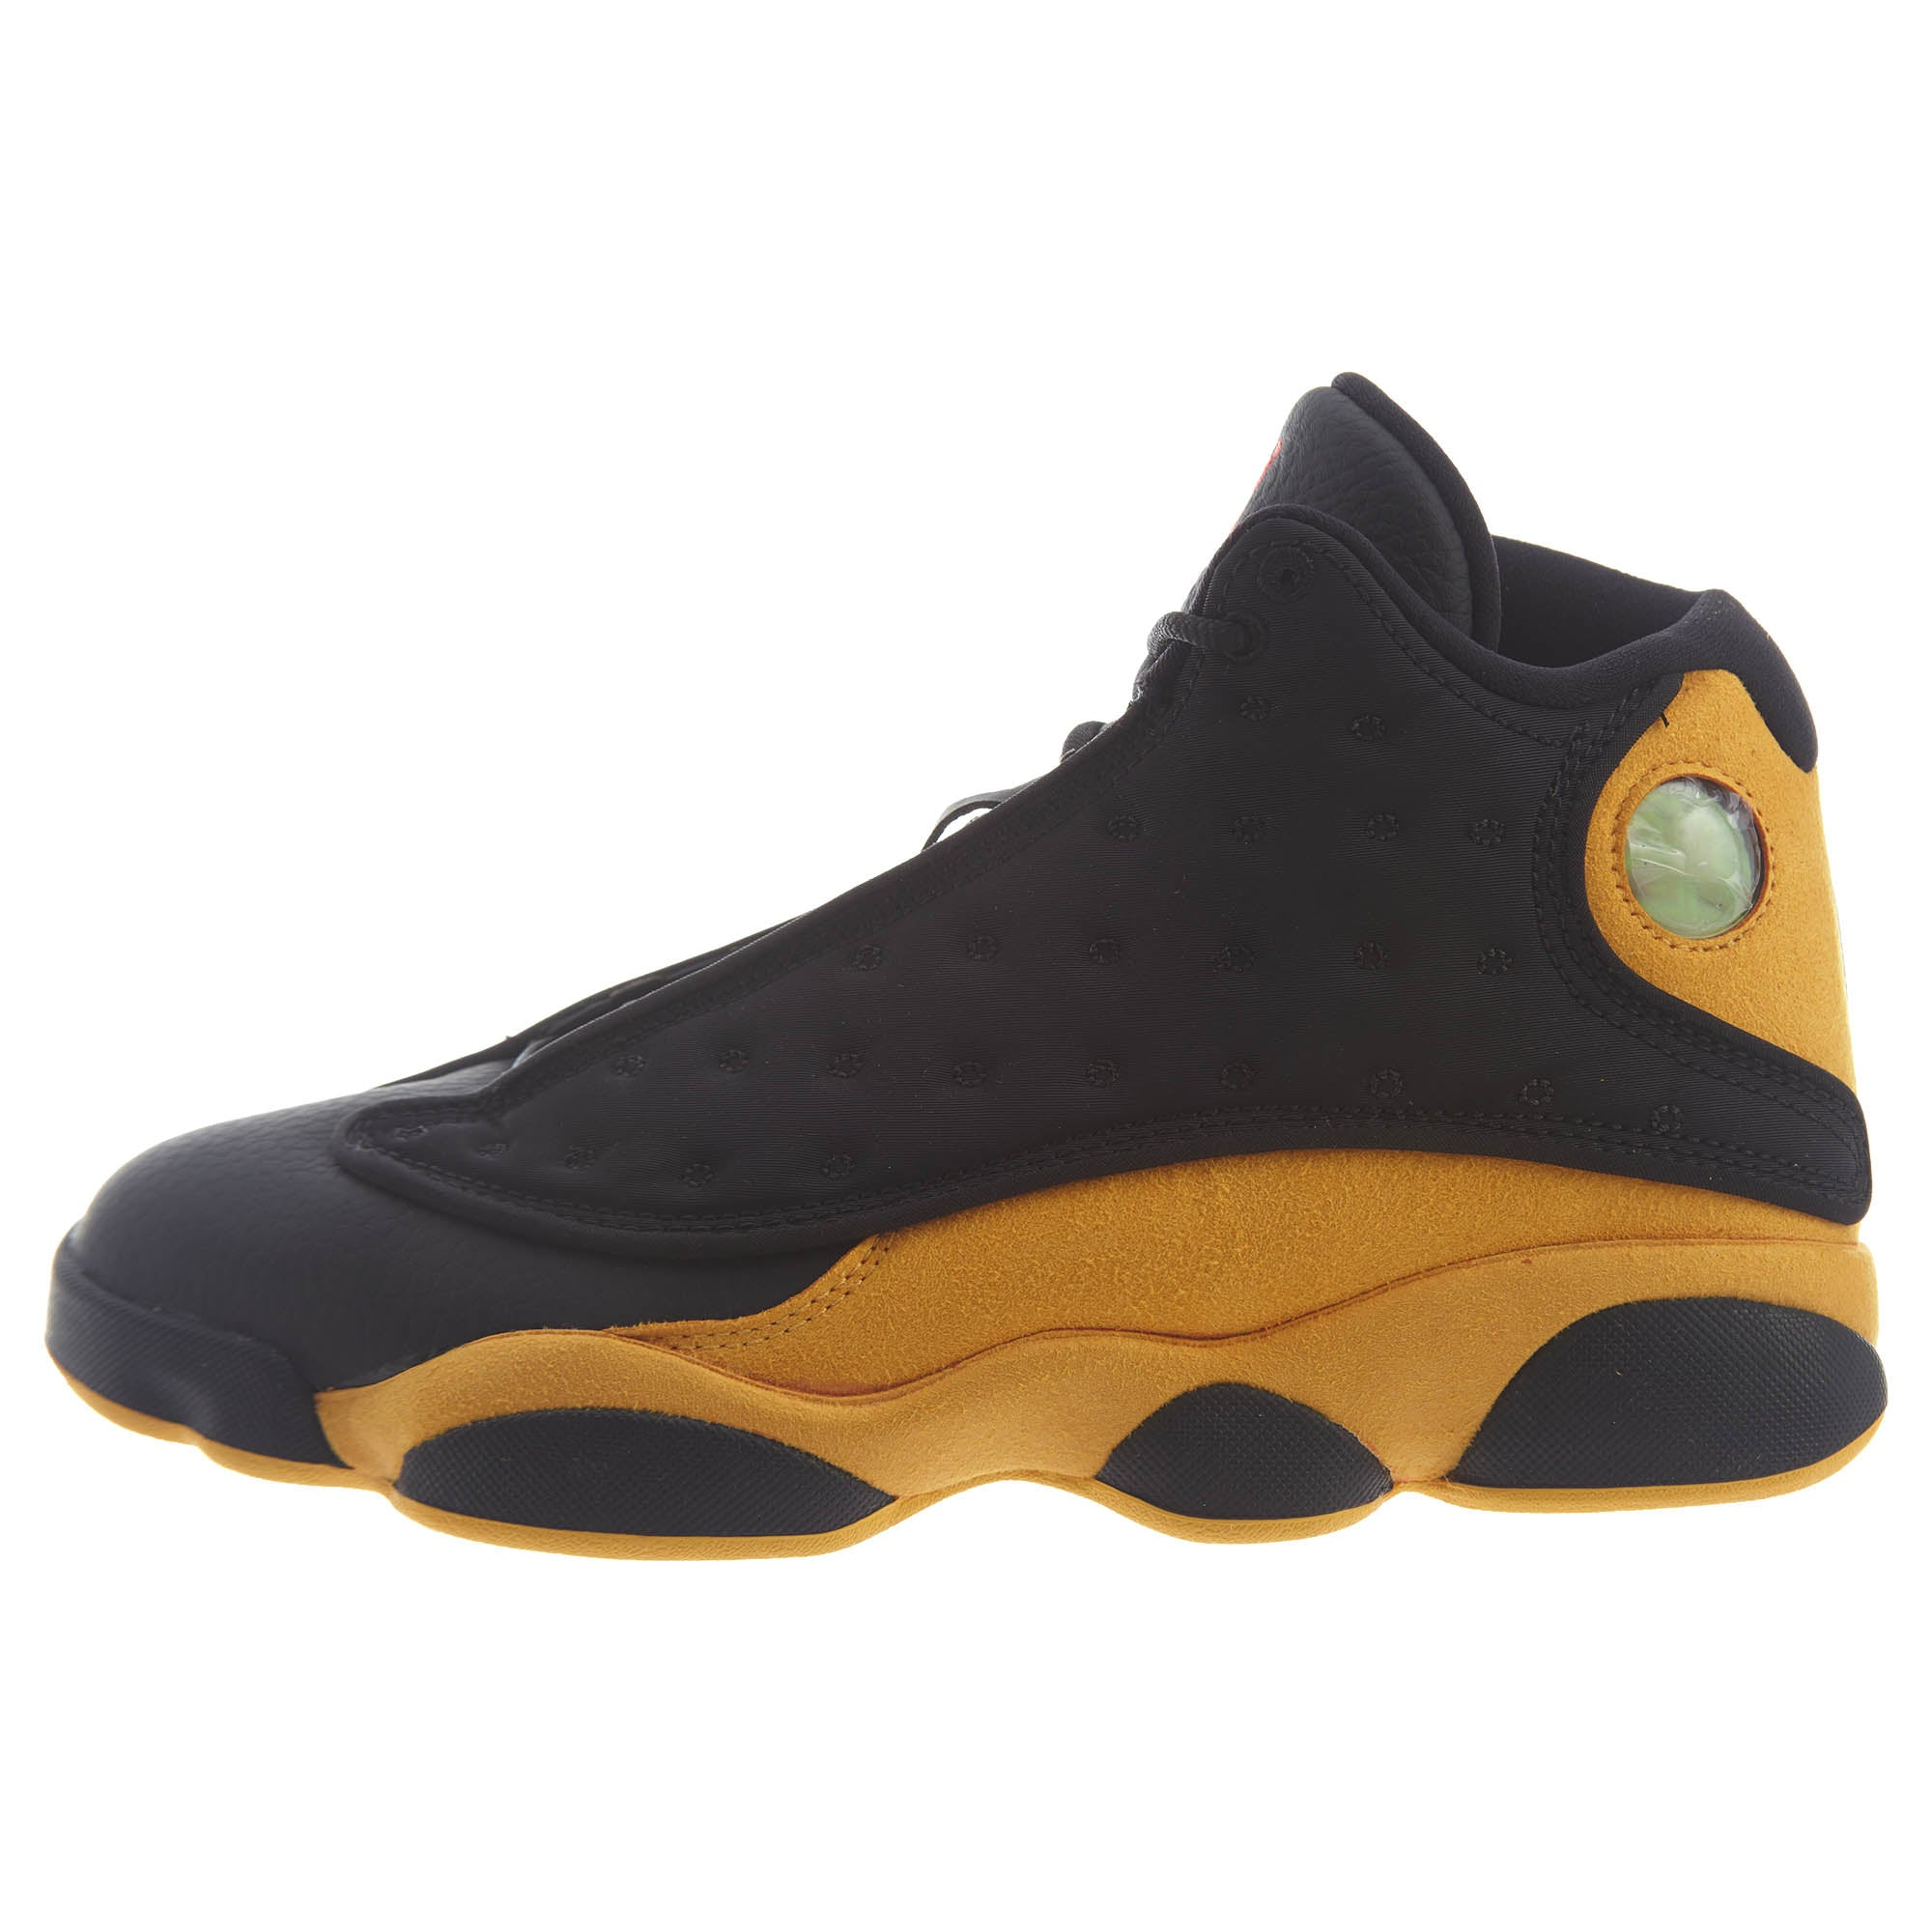 brand new 603ad 55bcb Air Jordan 13 Retro